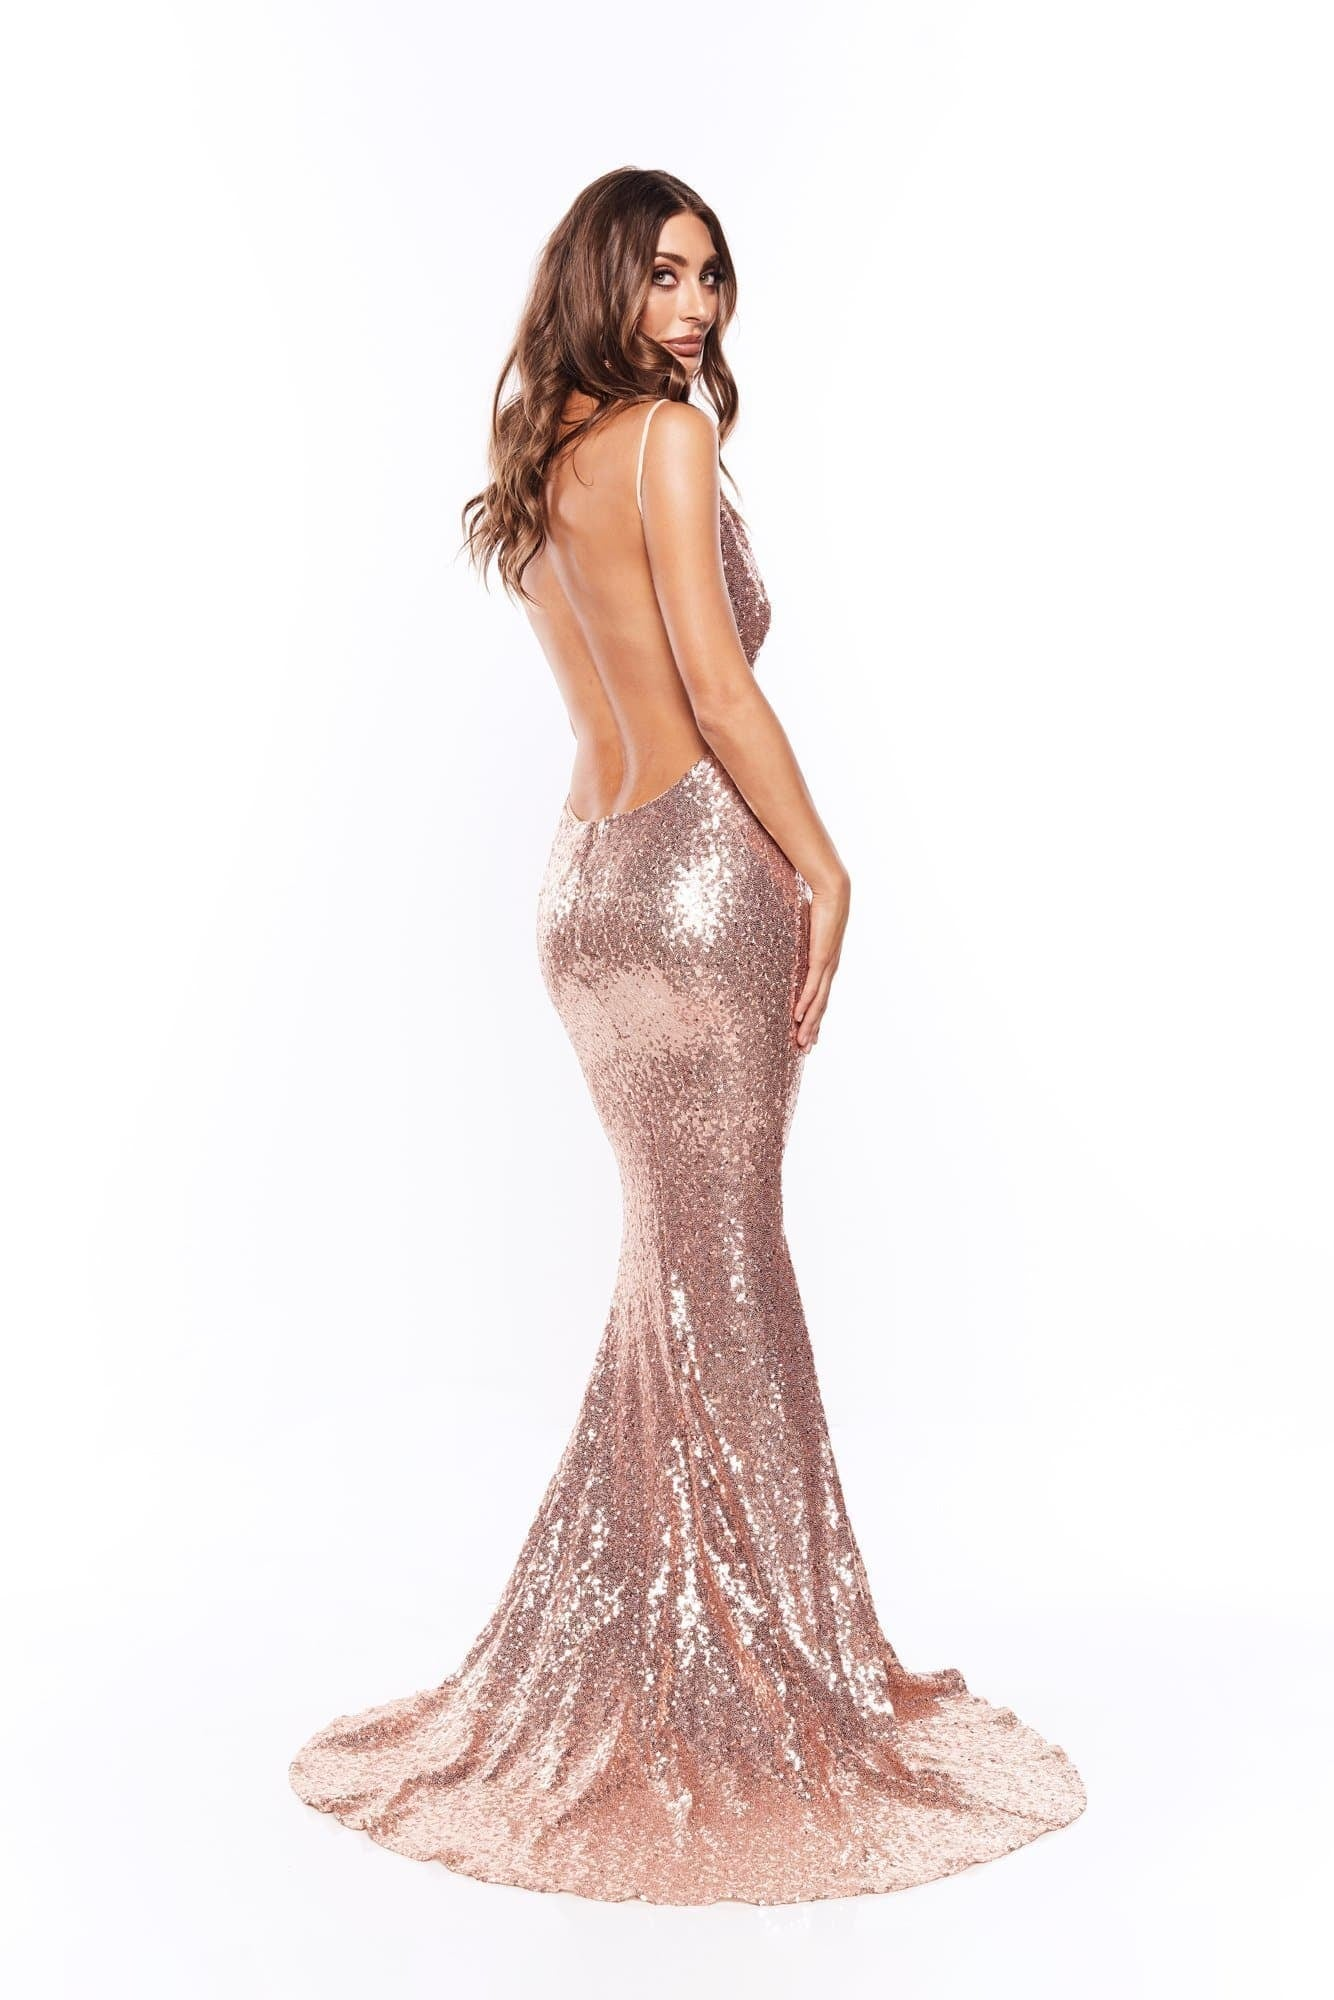 Yassmine - Rose Pink Mermaid Sequin Gown with Plunge Neckline